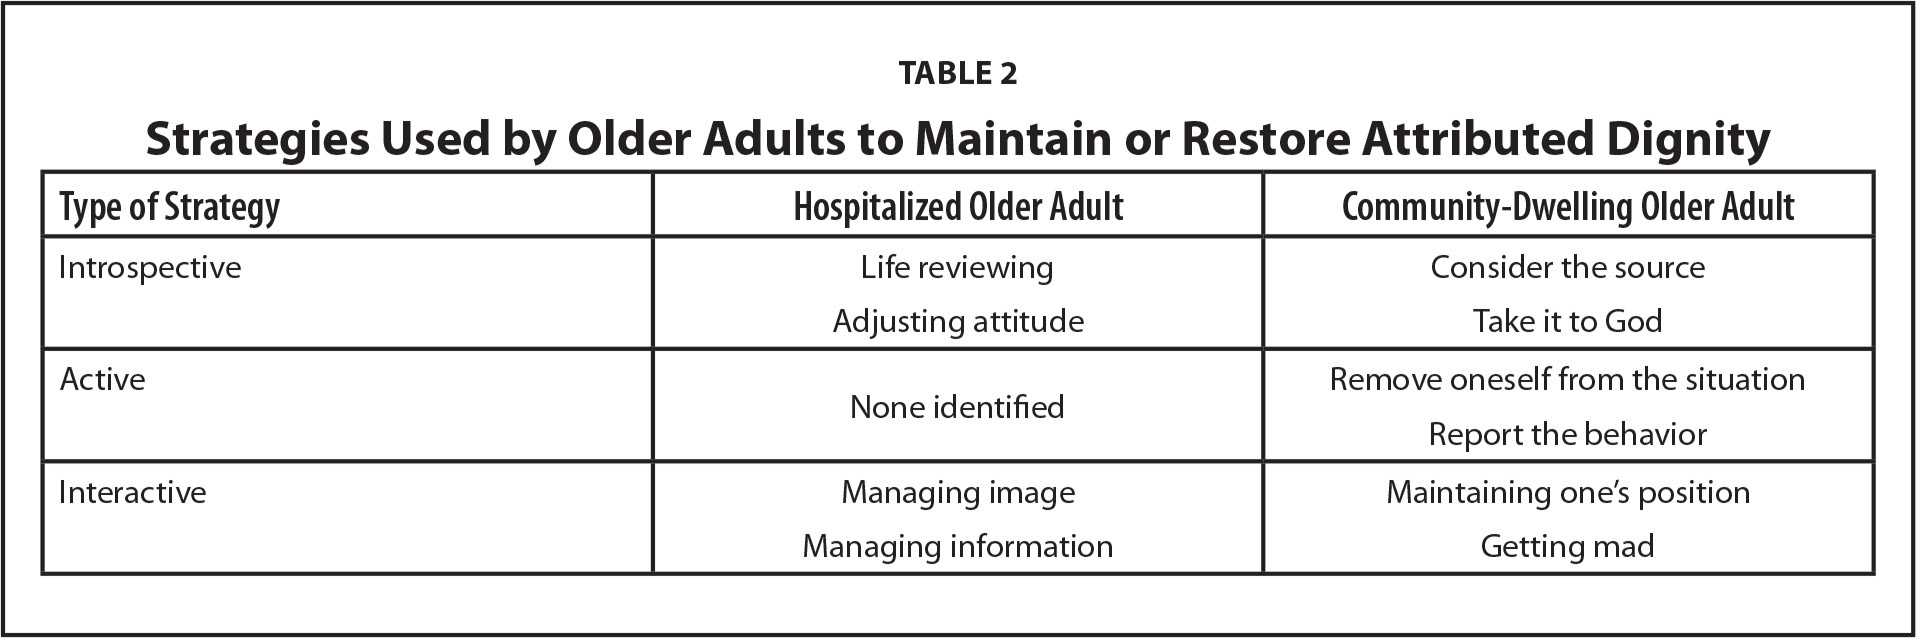 Strategies Used by Older Adults to Maintain or Restore Attributed Dignity